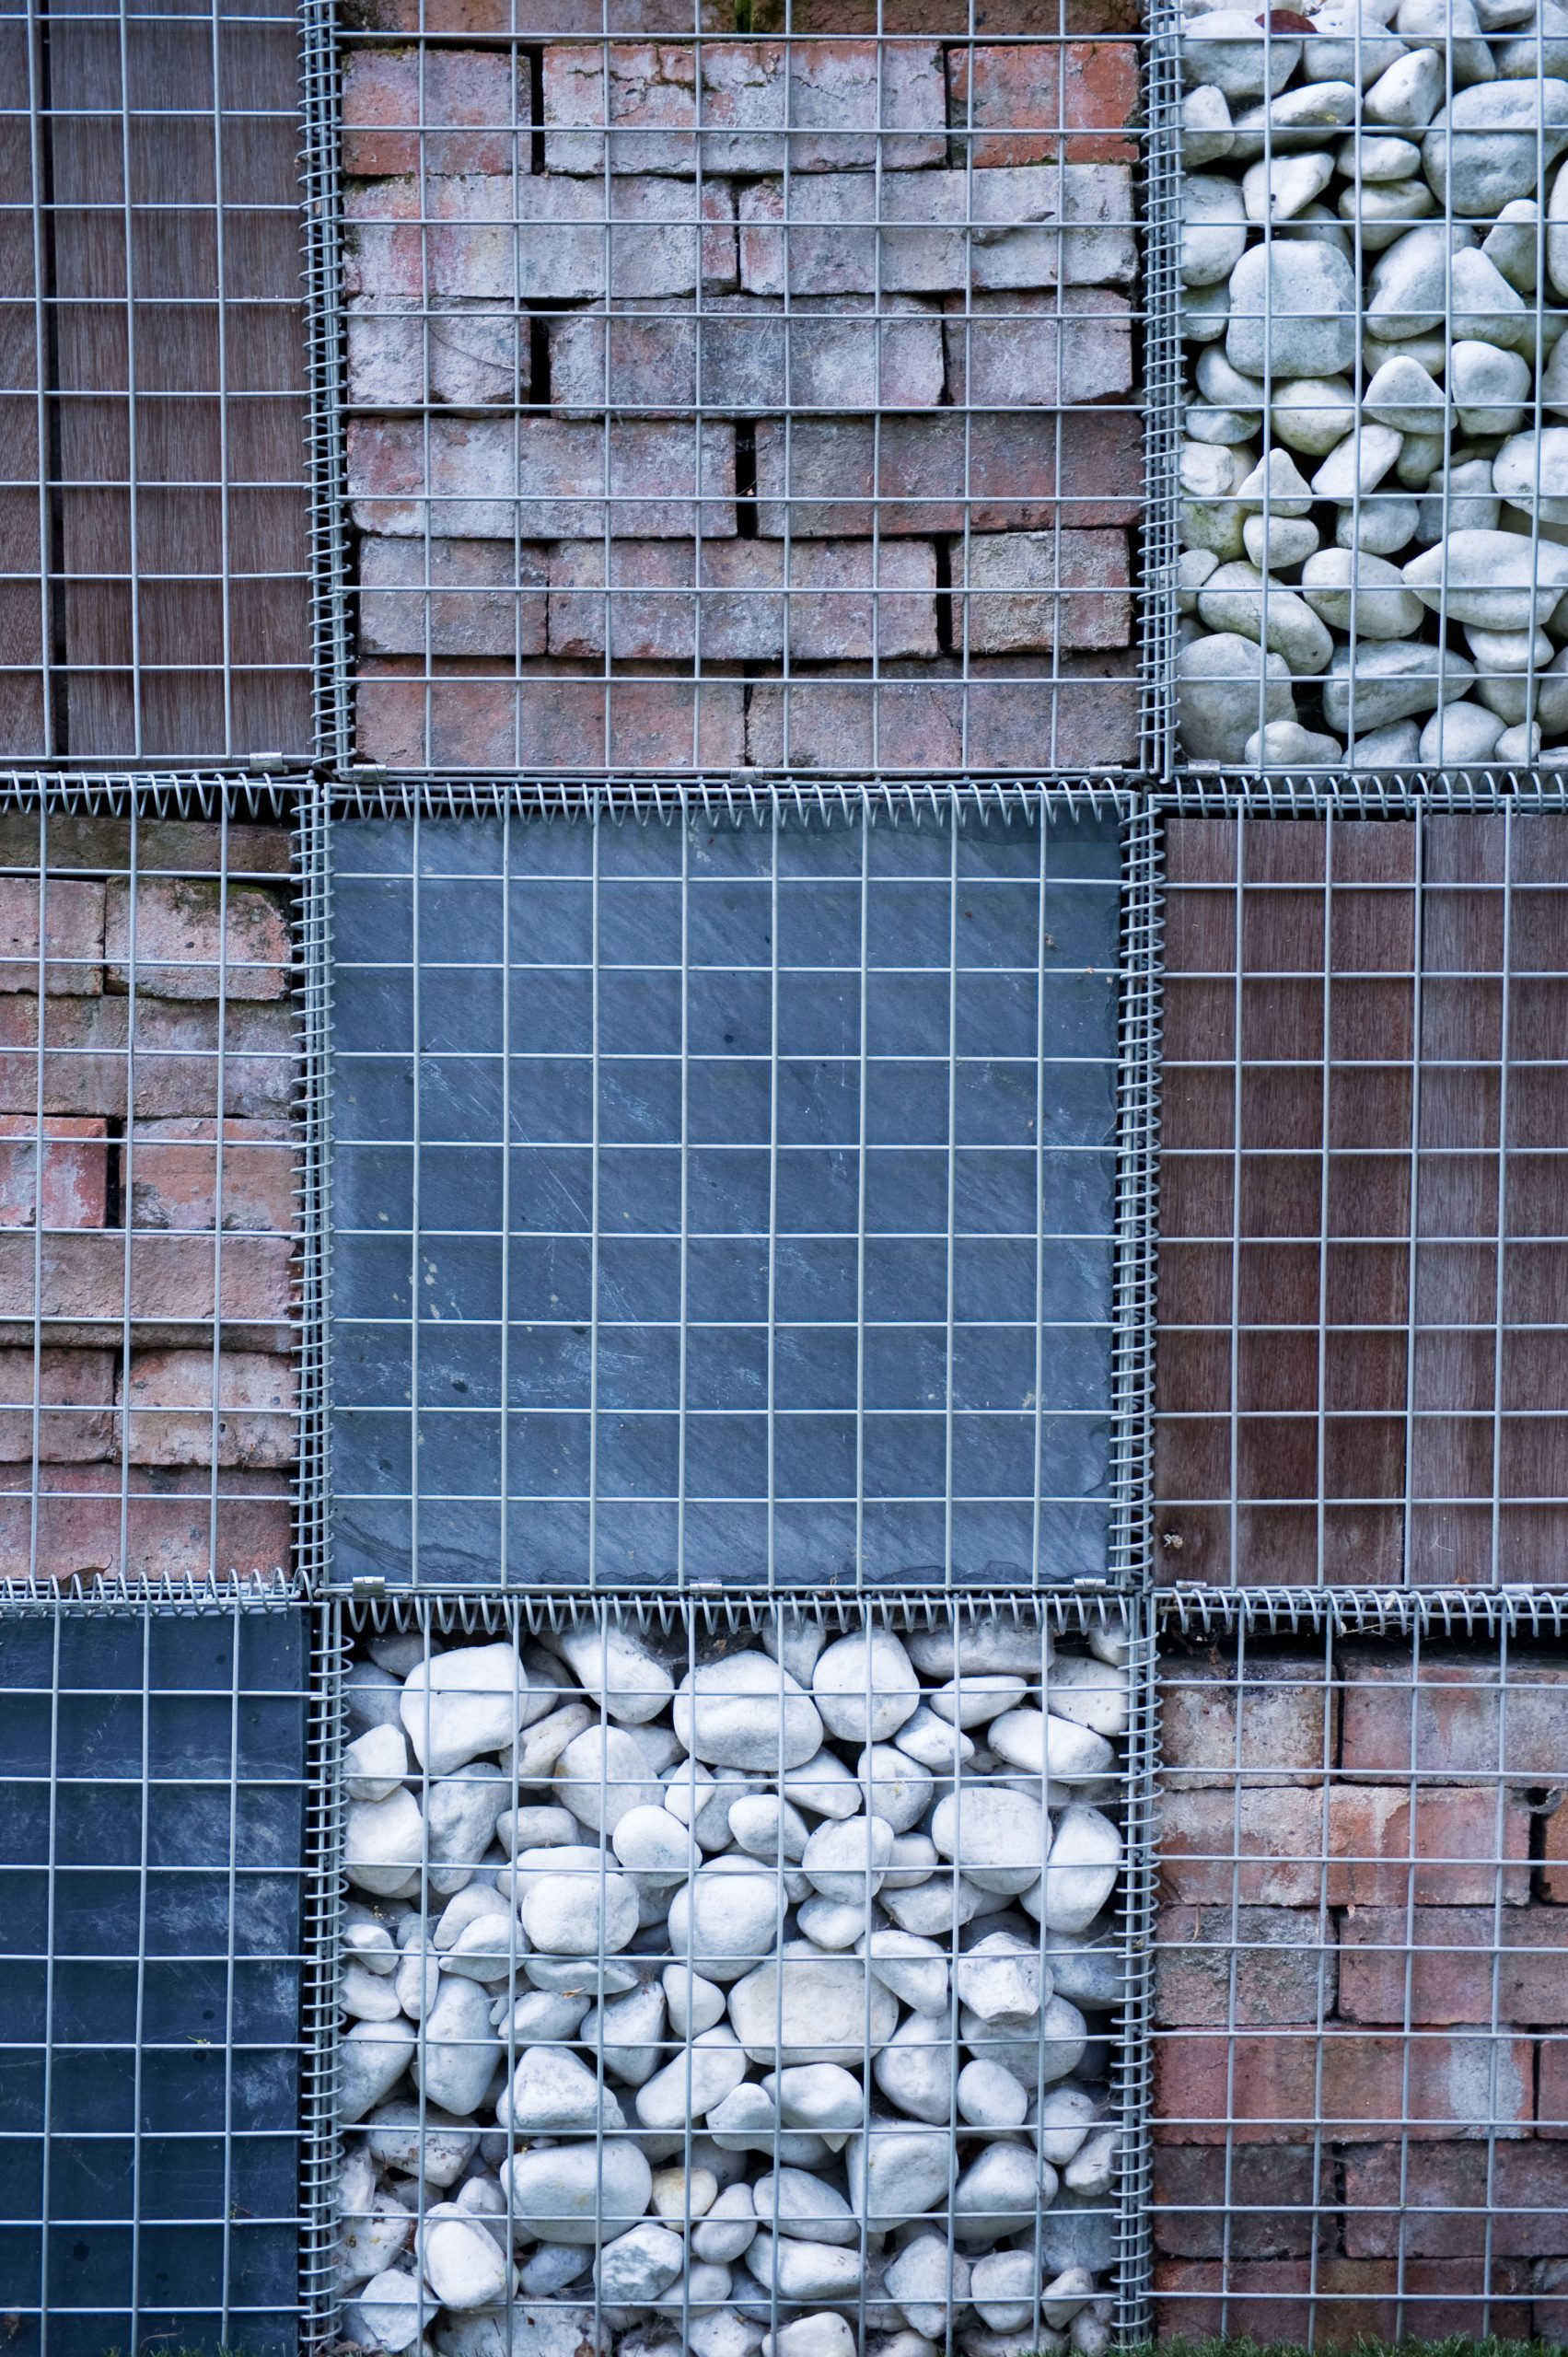 filled gabions